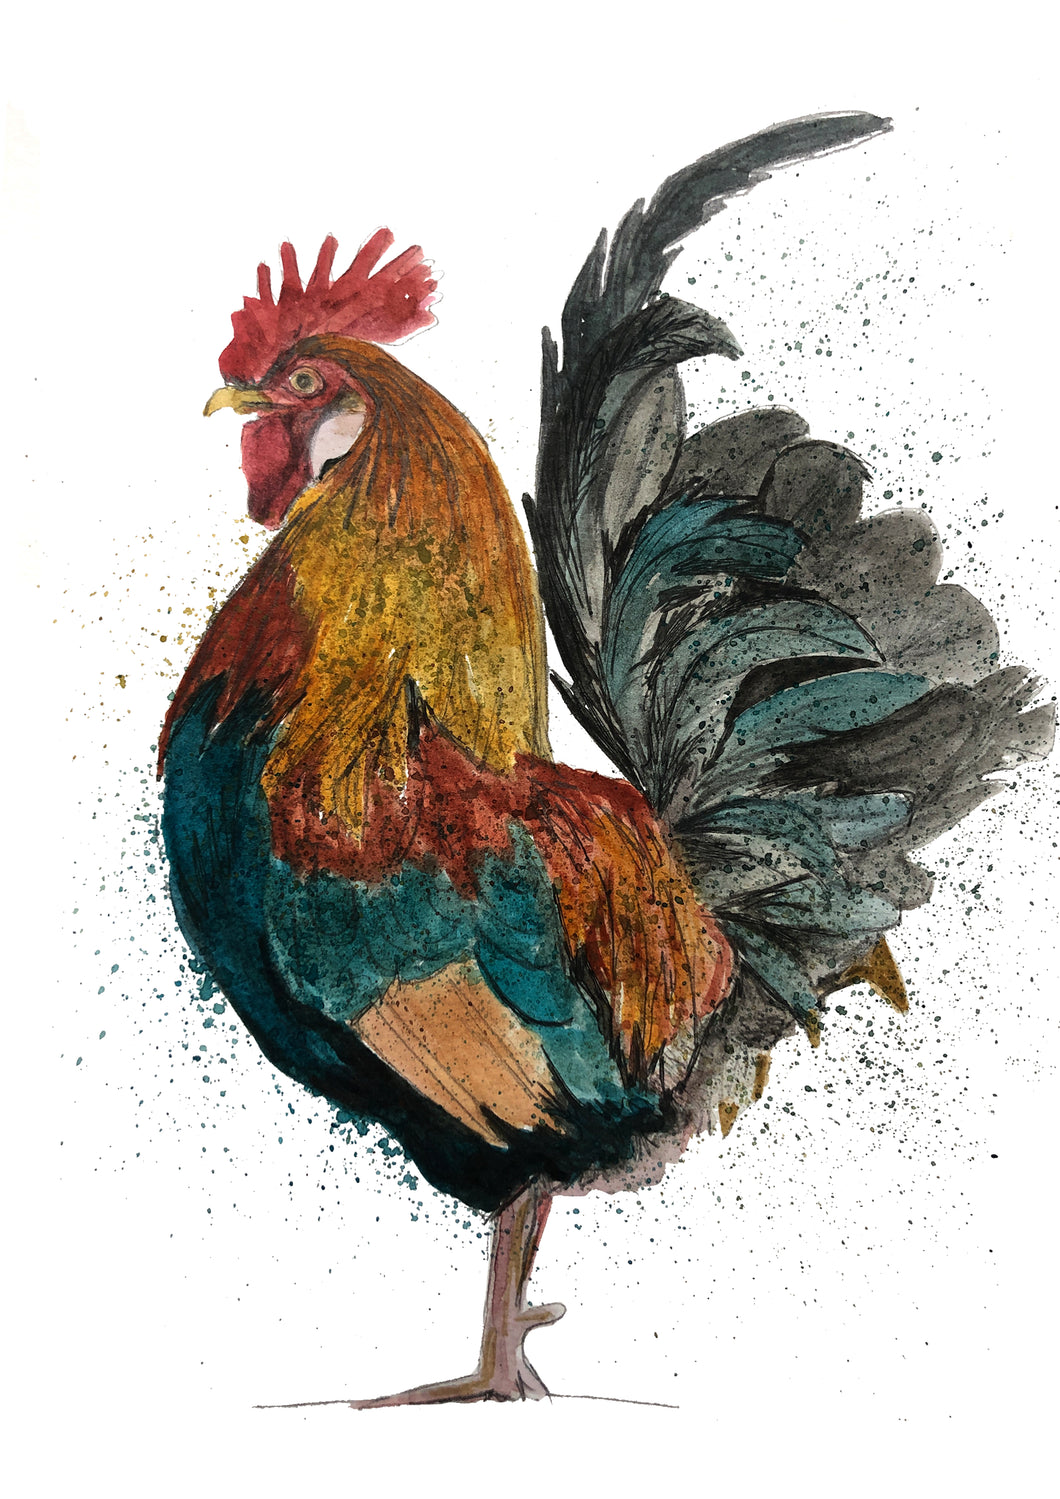 Handsome Rooster Print Watercolour and Ink Painting by Yorkshire Artist Ellie Baarda